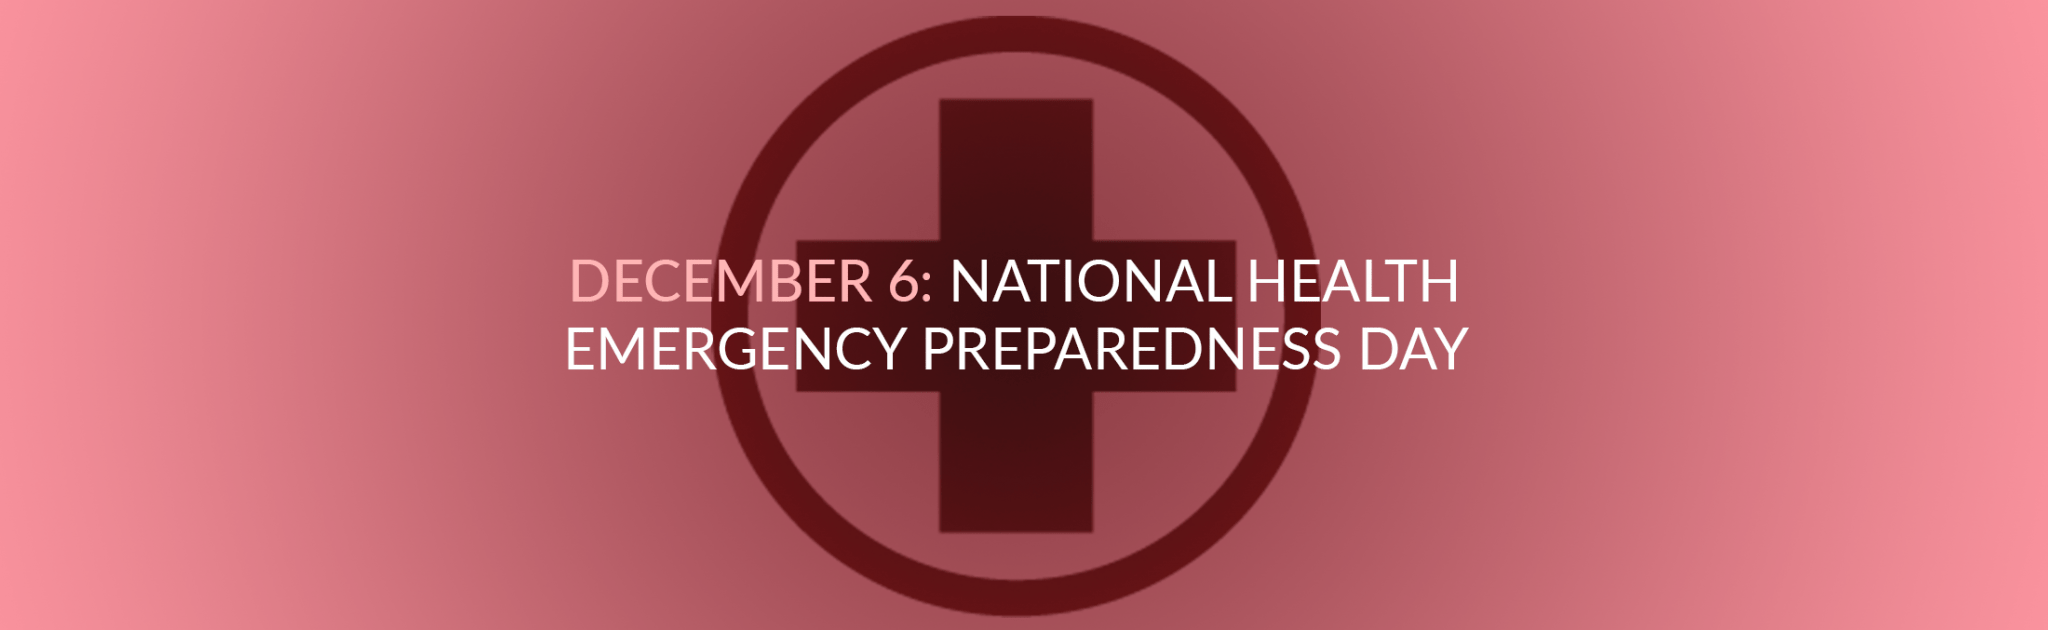 philippine national health emergency preparedness day banner